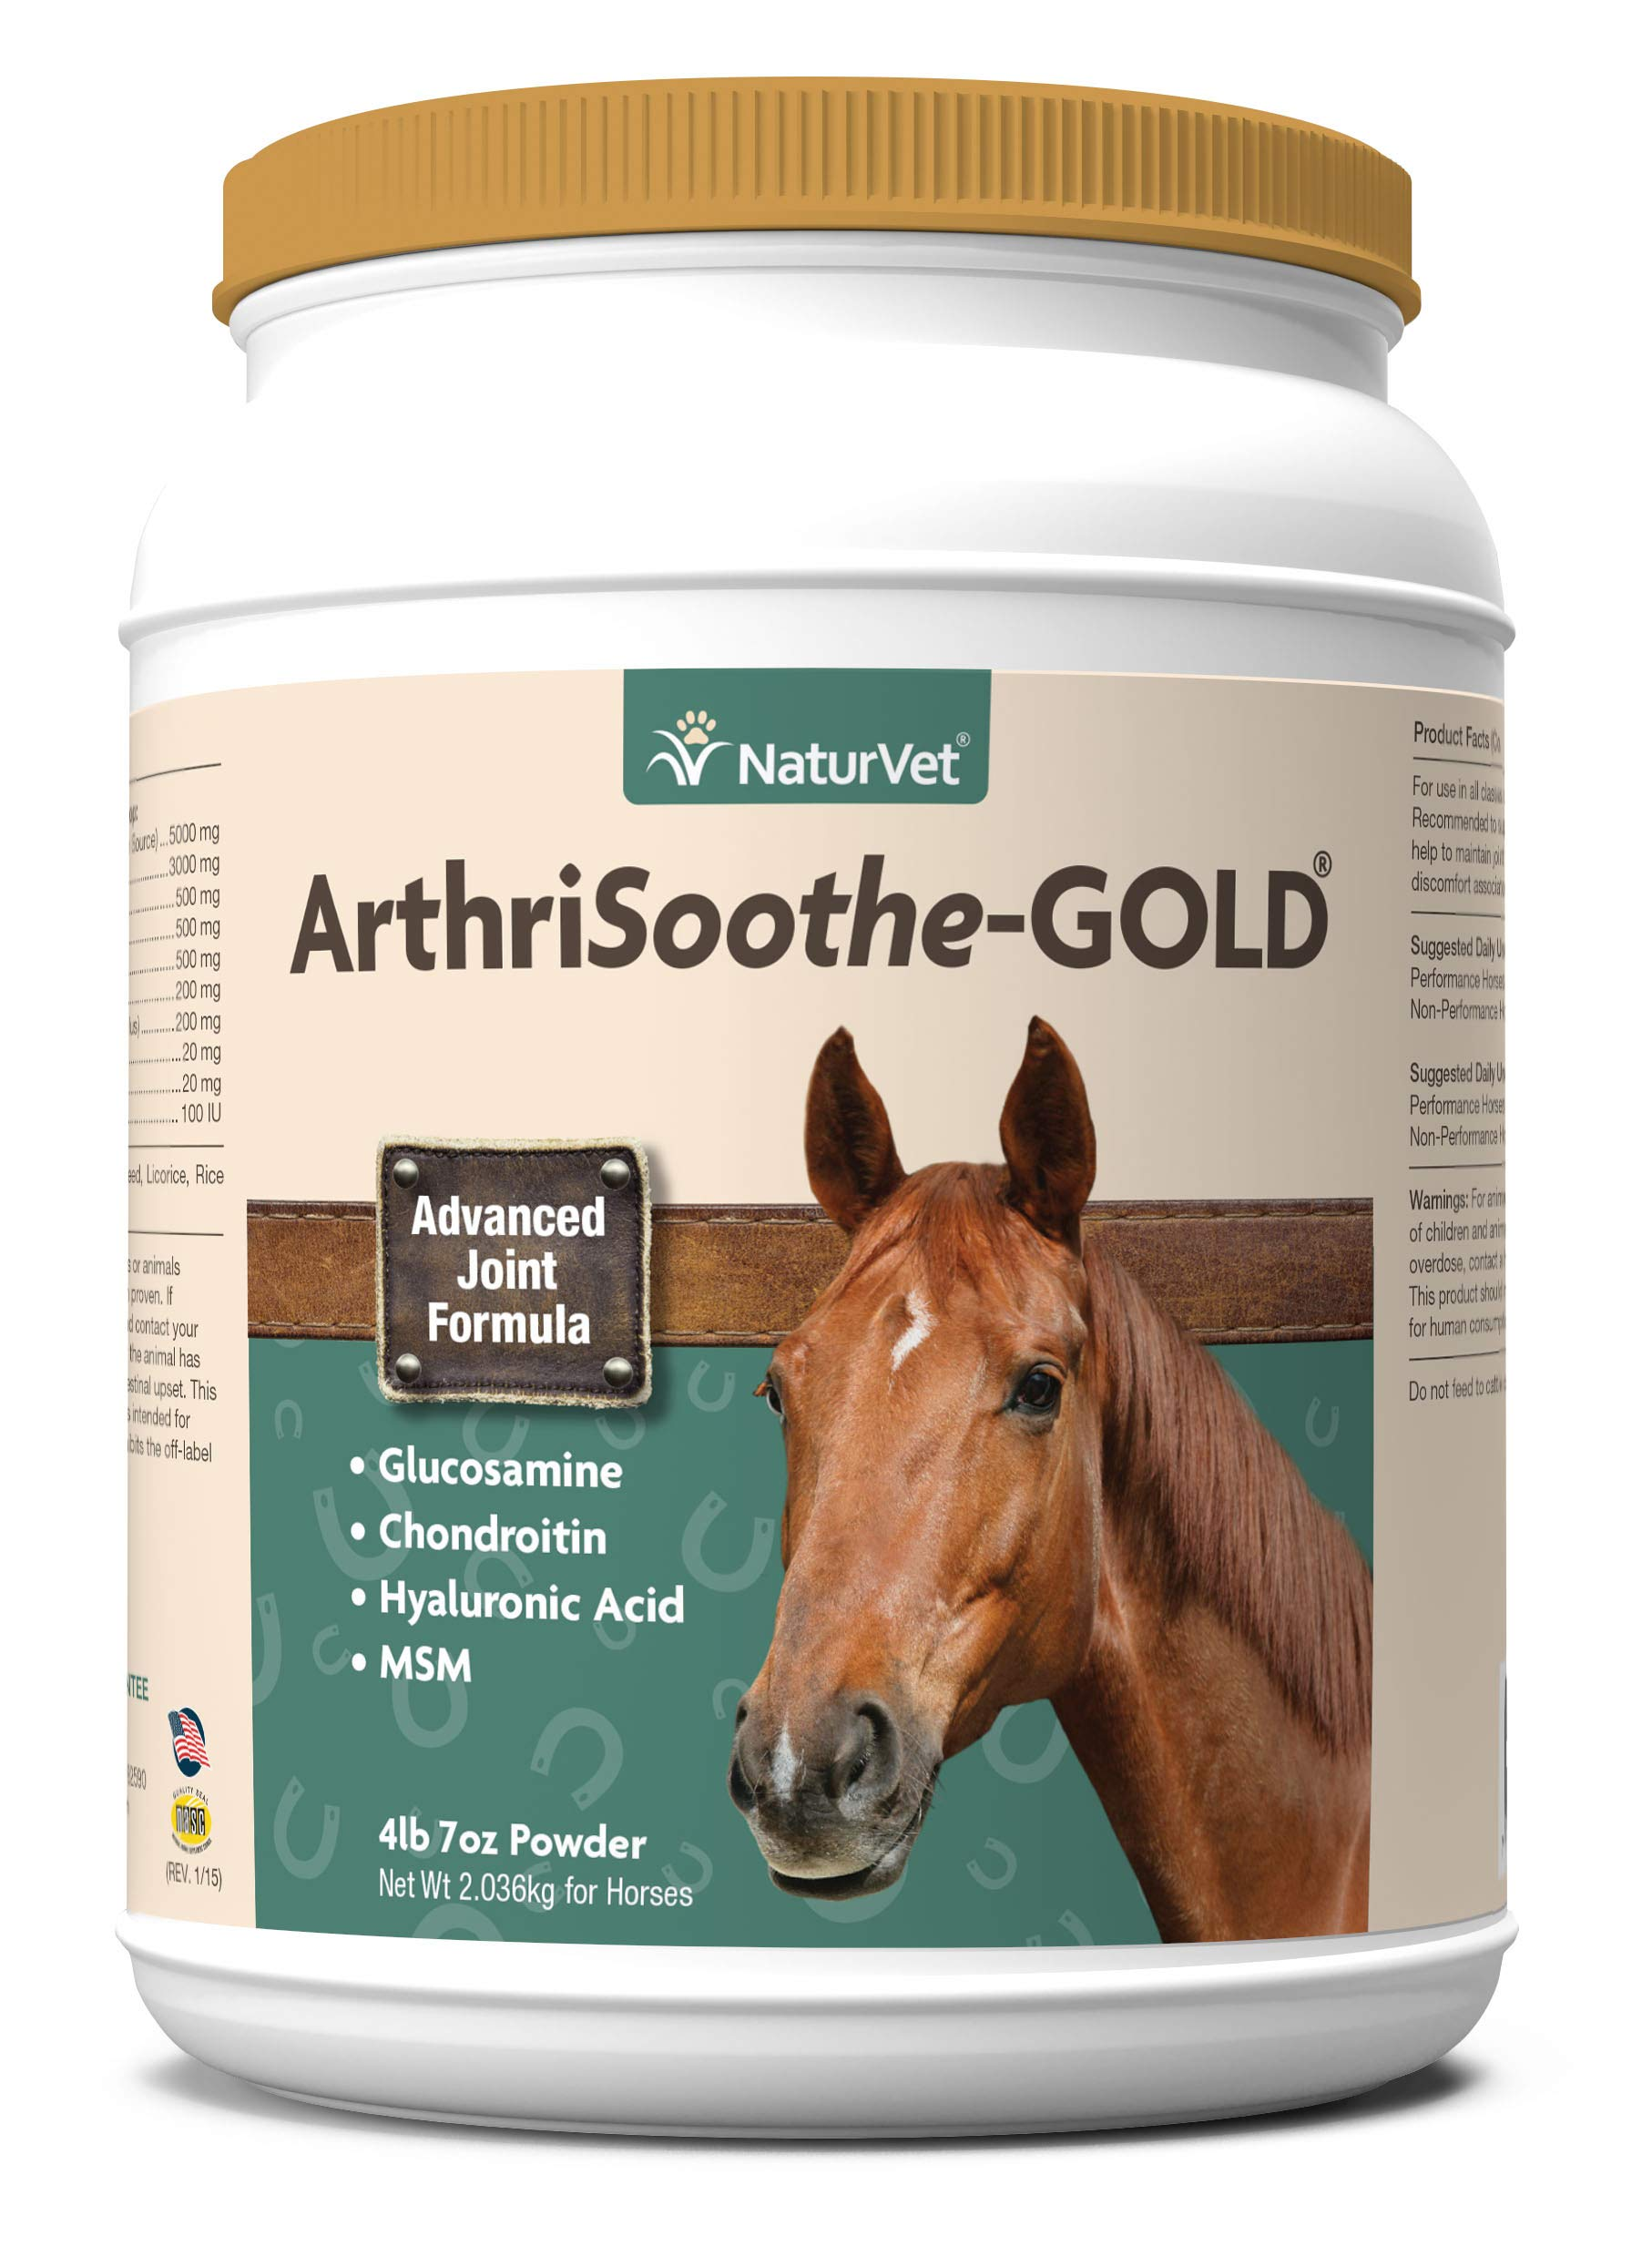 NaturVet - ArthriSoothe-Gold Advanced Joint Formula - Horse Powder - Supports Healthy Joint Function - Enhanced with Glucosamine, MSM, Chondroitin & Hyaluronic Acid (120 Day Supply) by NaturVet